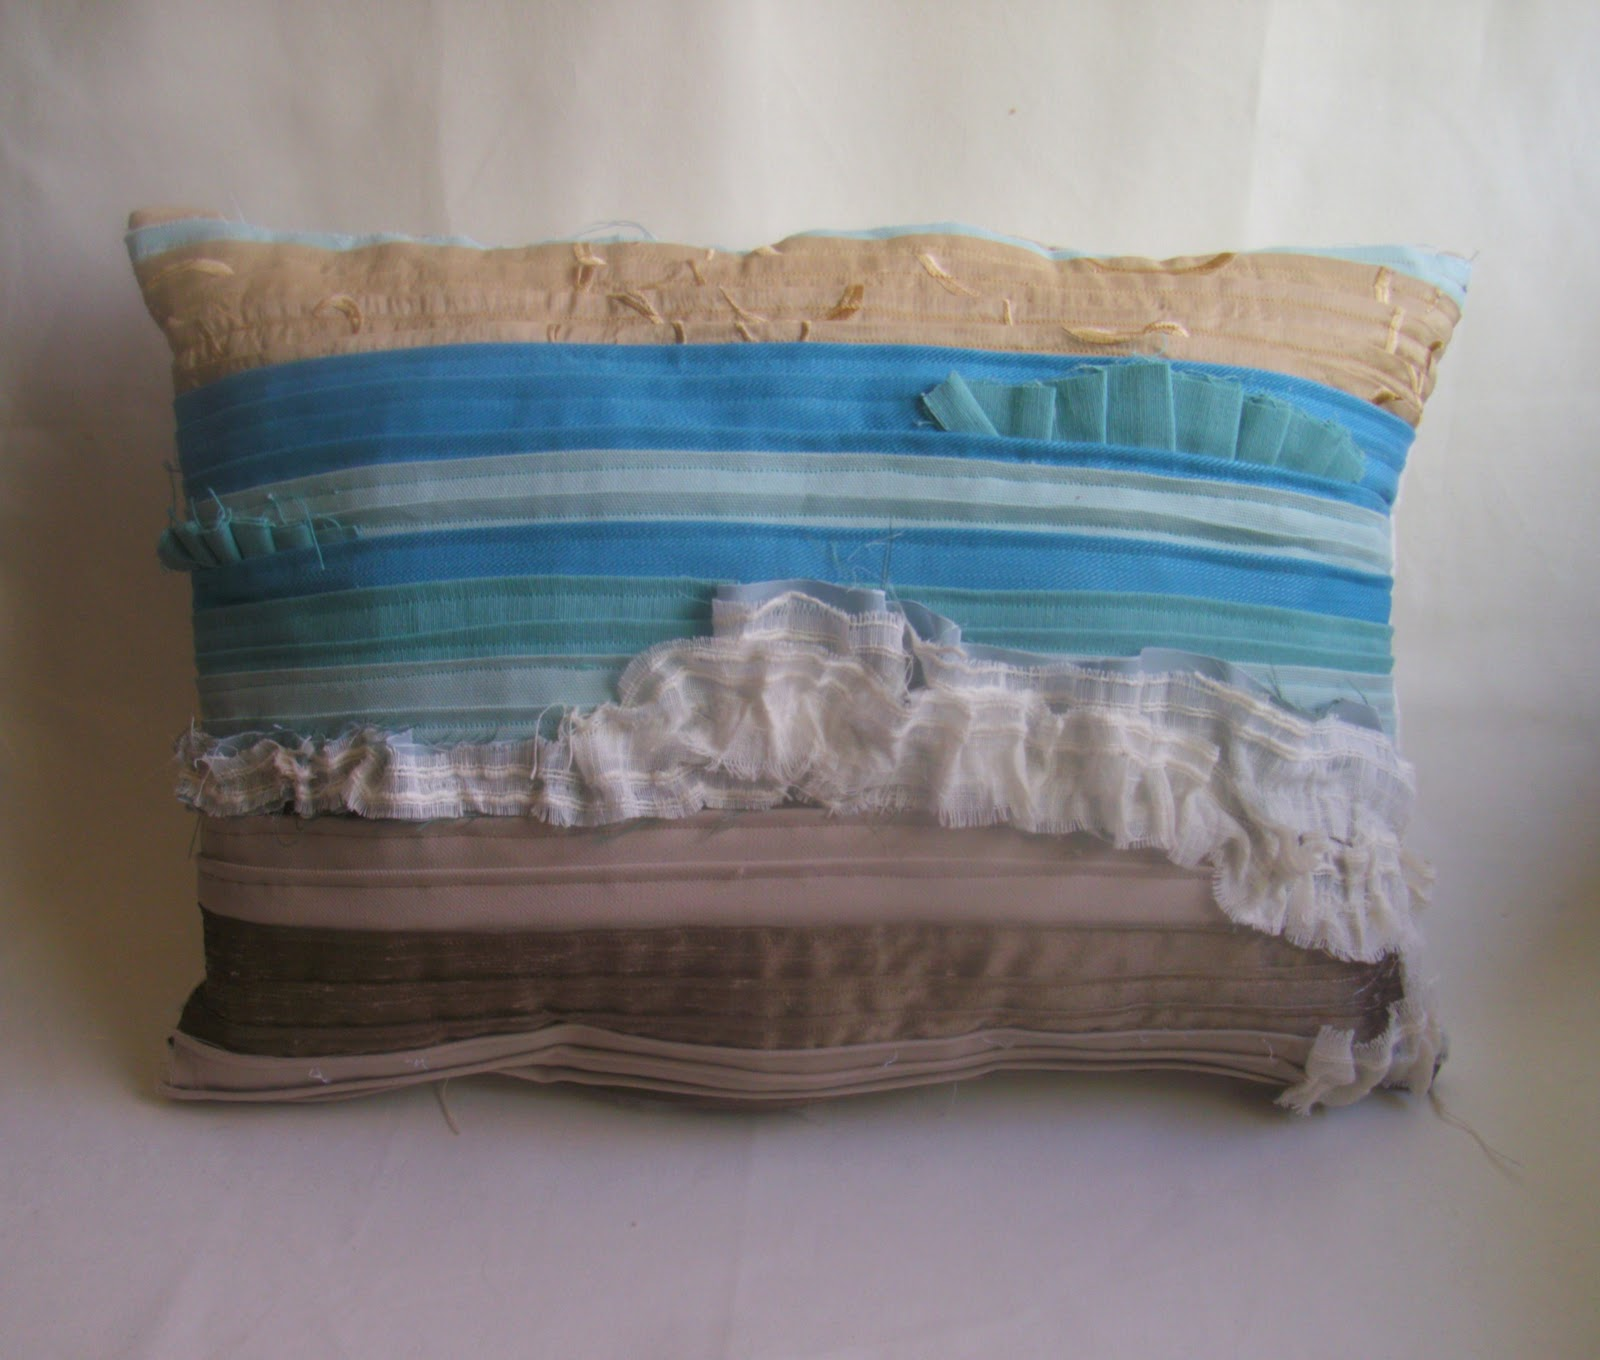 boat outdoor beach conch shell fabric pillow indoor pillows cushions products style sunbrella